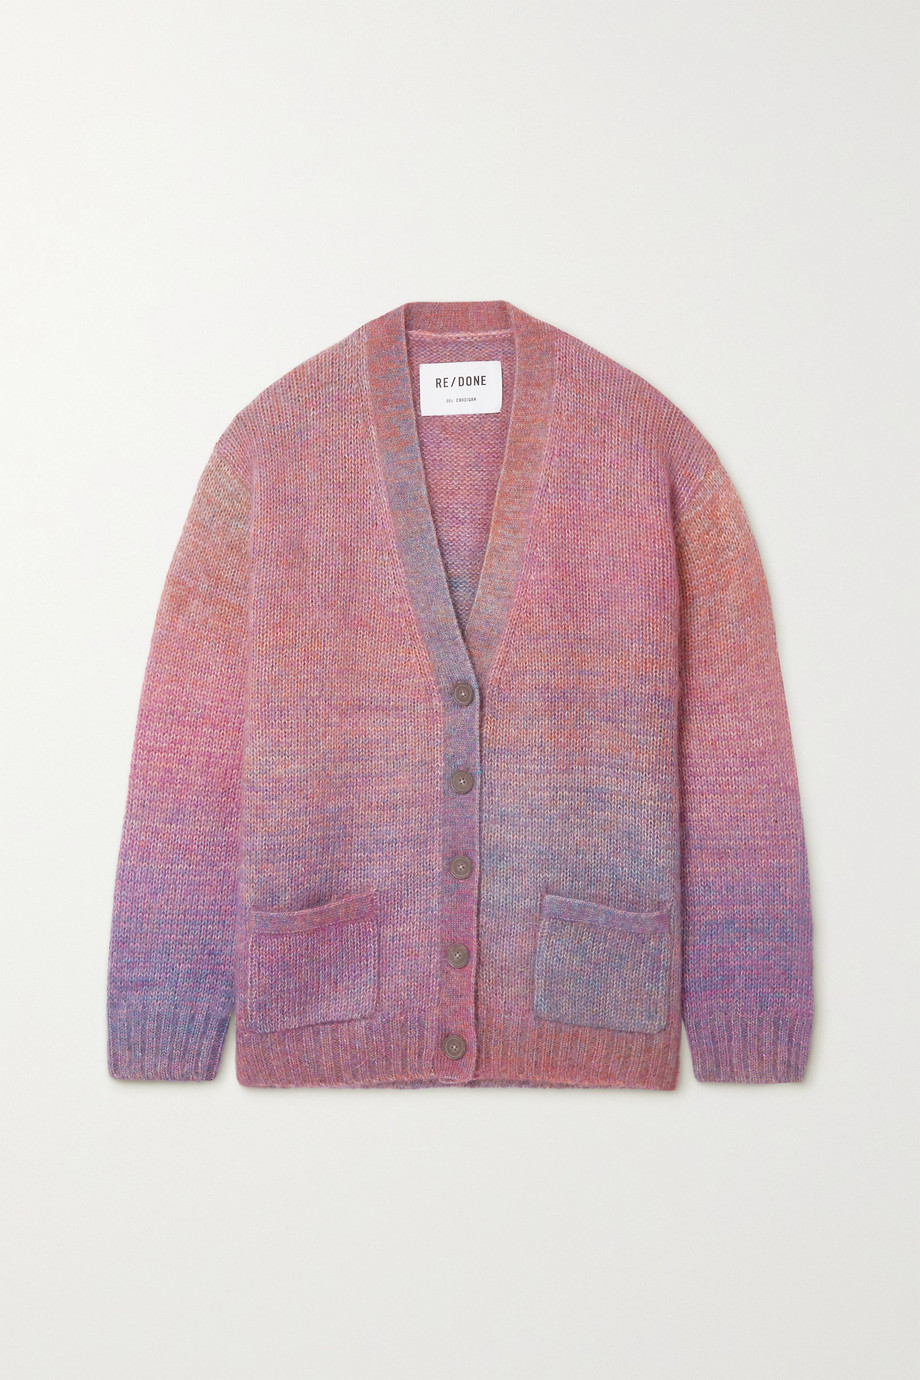 RE/DONE 90s space-dyed knitted cardigan